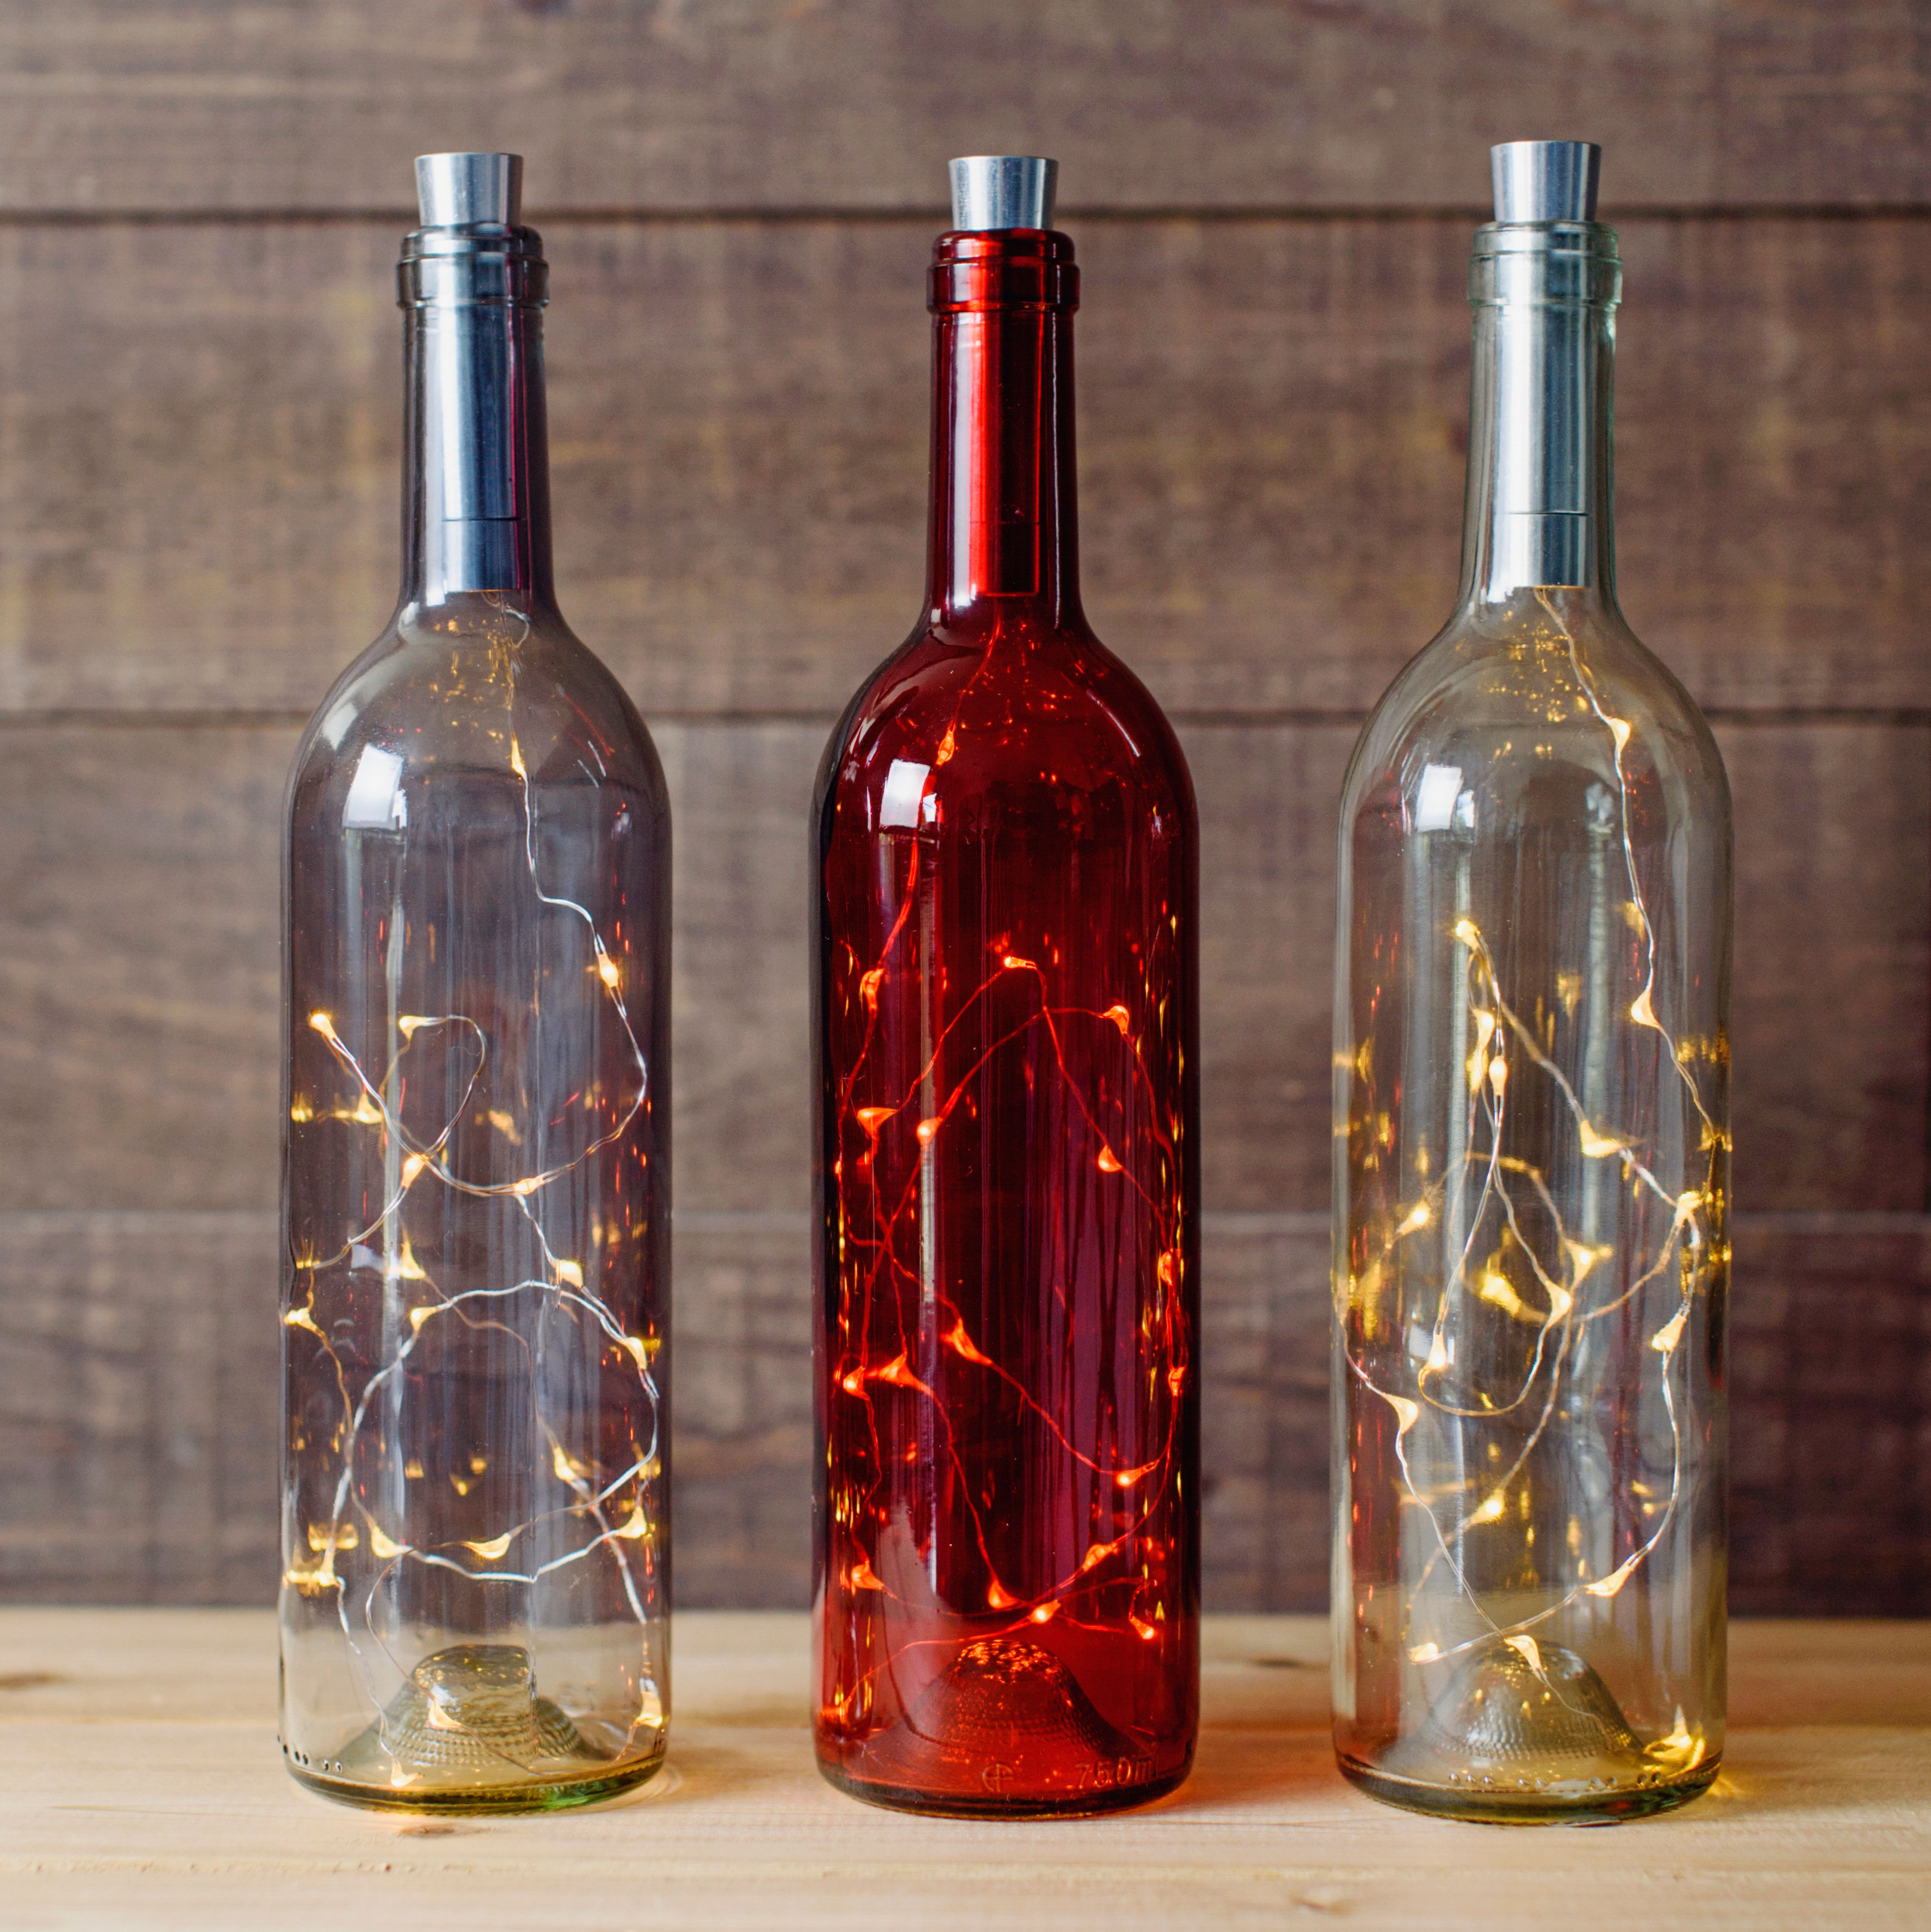 Wine Bottle Lantern Collection By Torre Tagus Wine Bottle 20 Led Lantern Red Torres Frascos